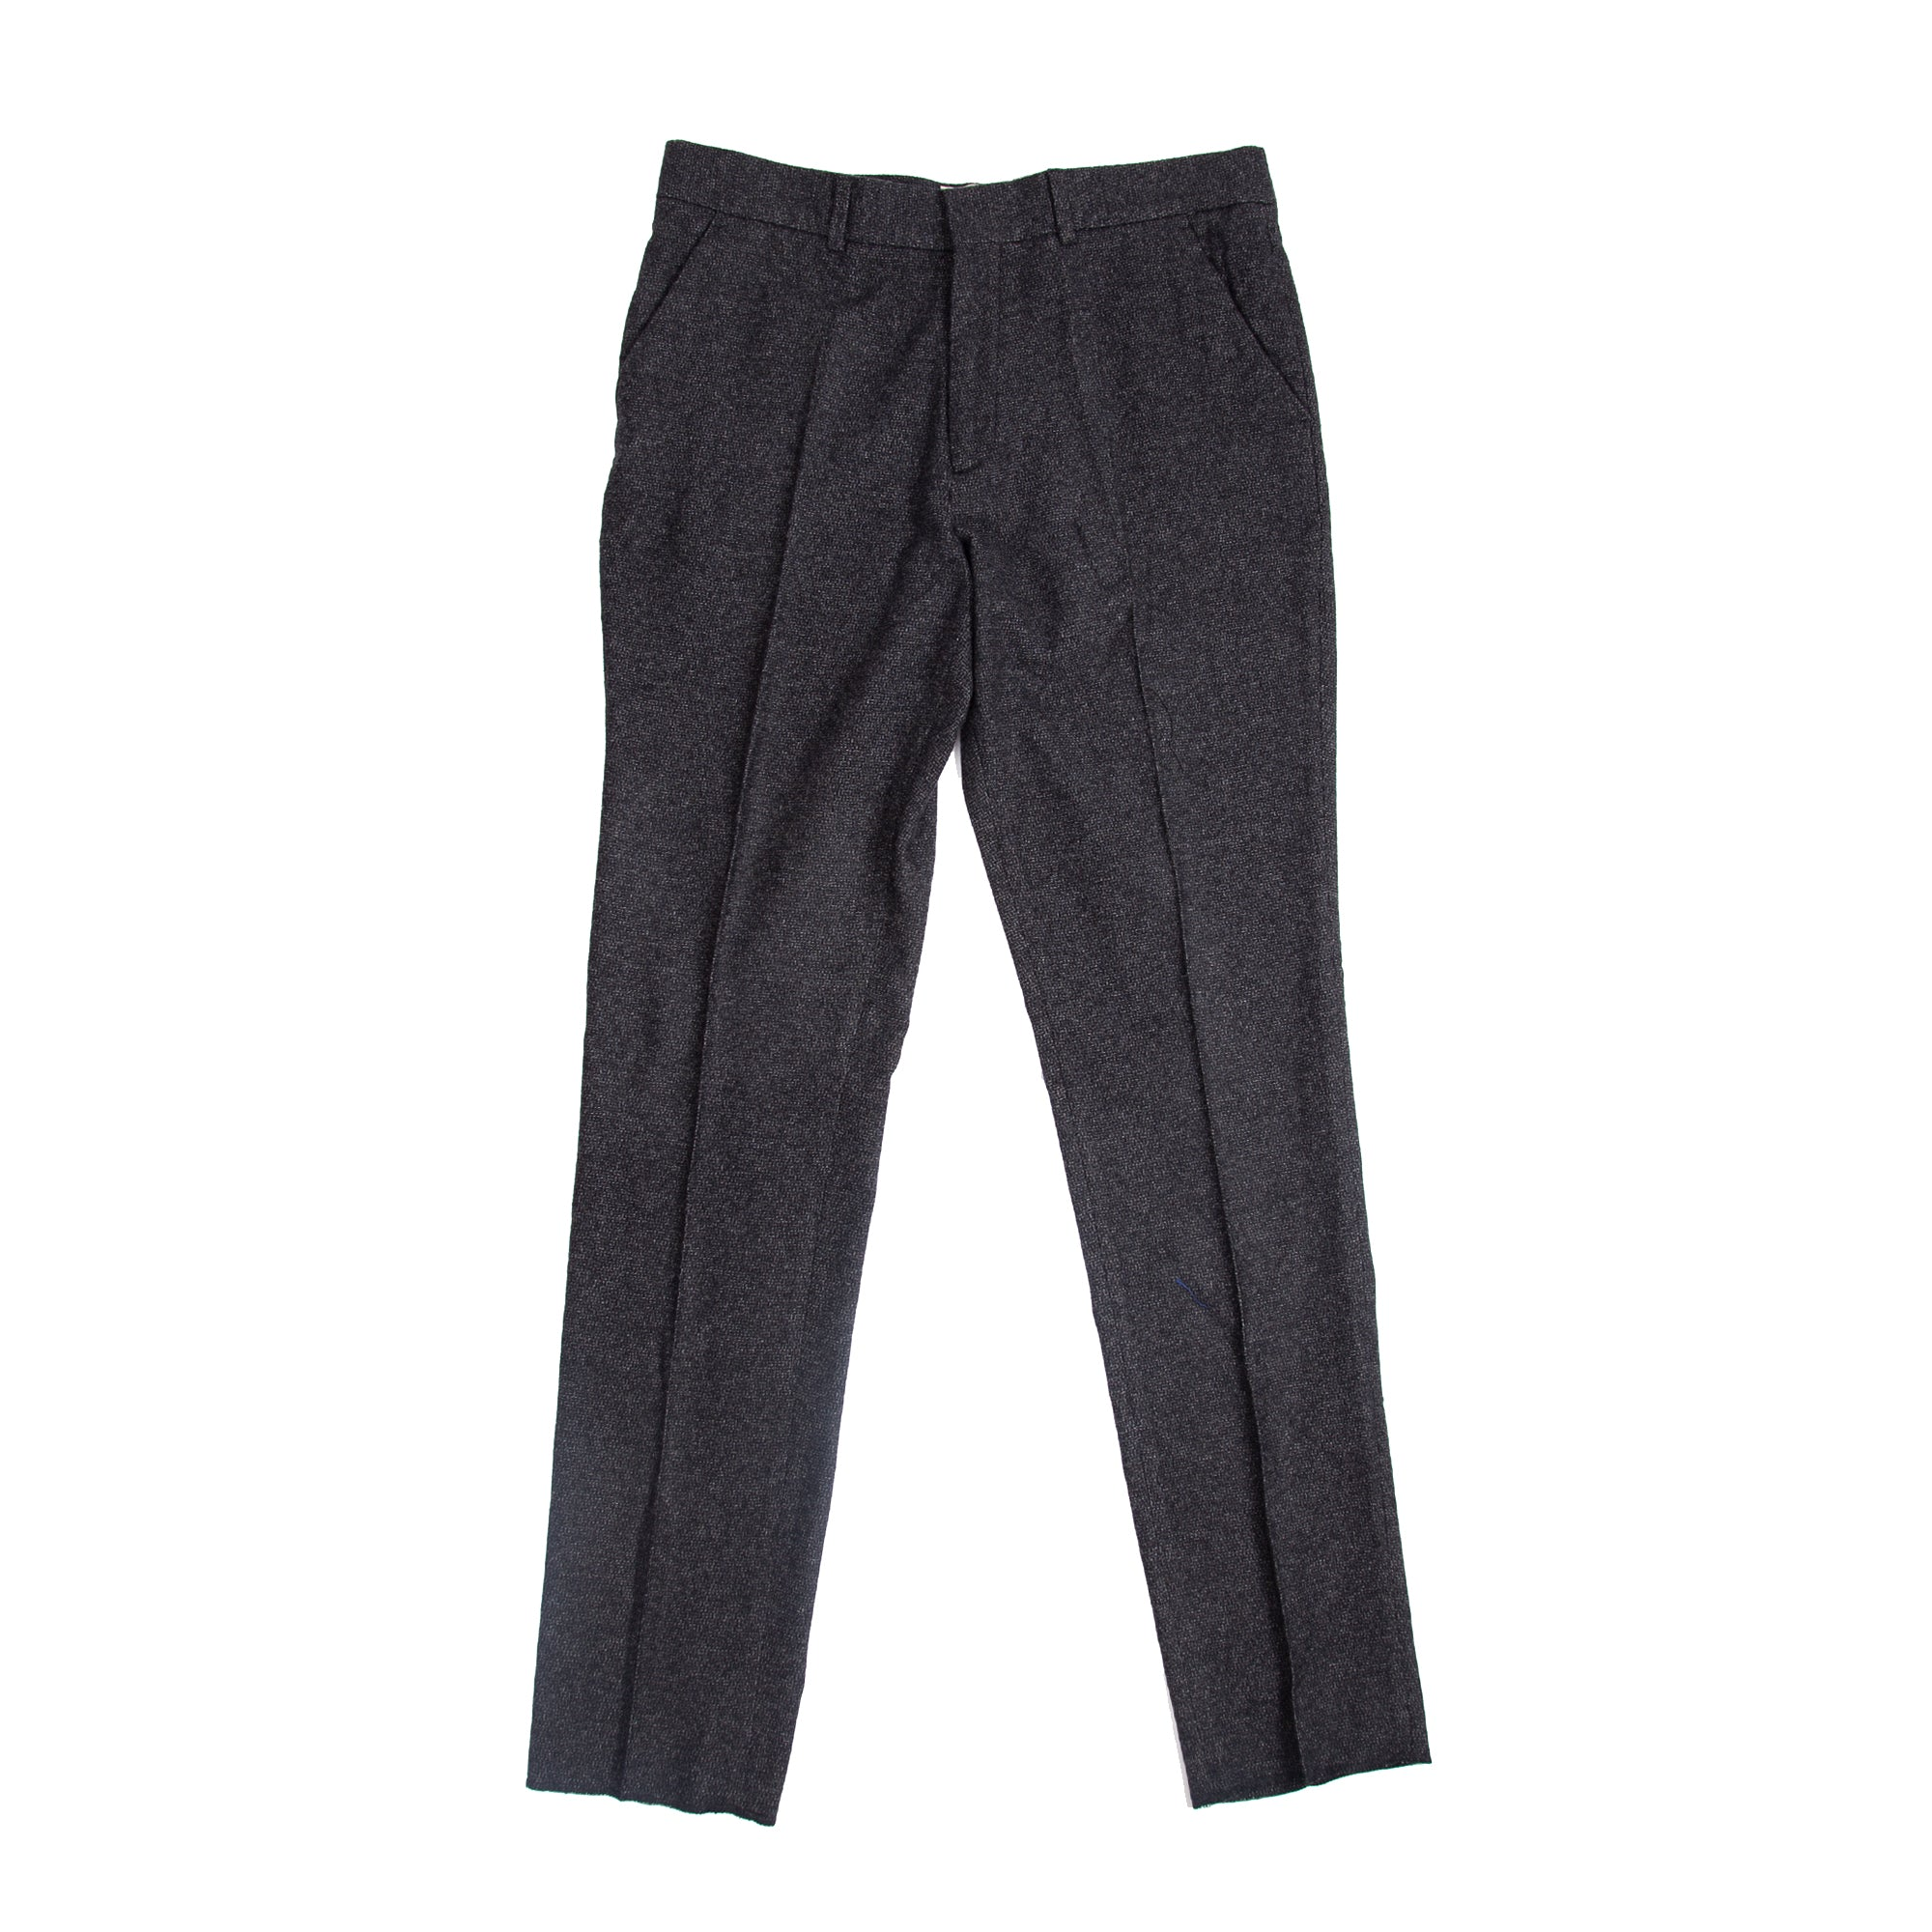 Counter Trousers - Charcoal